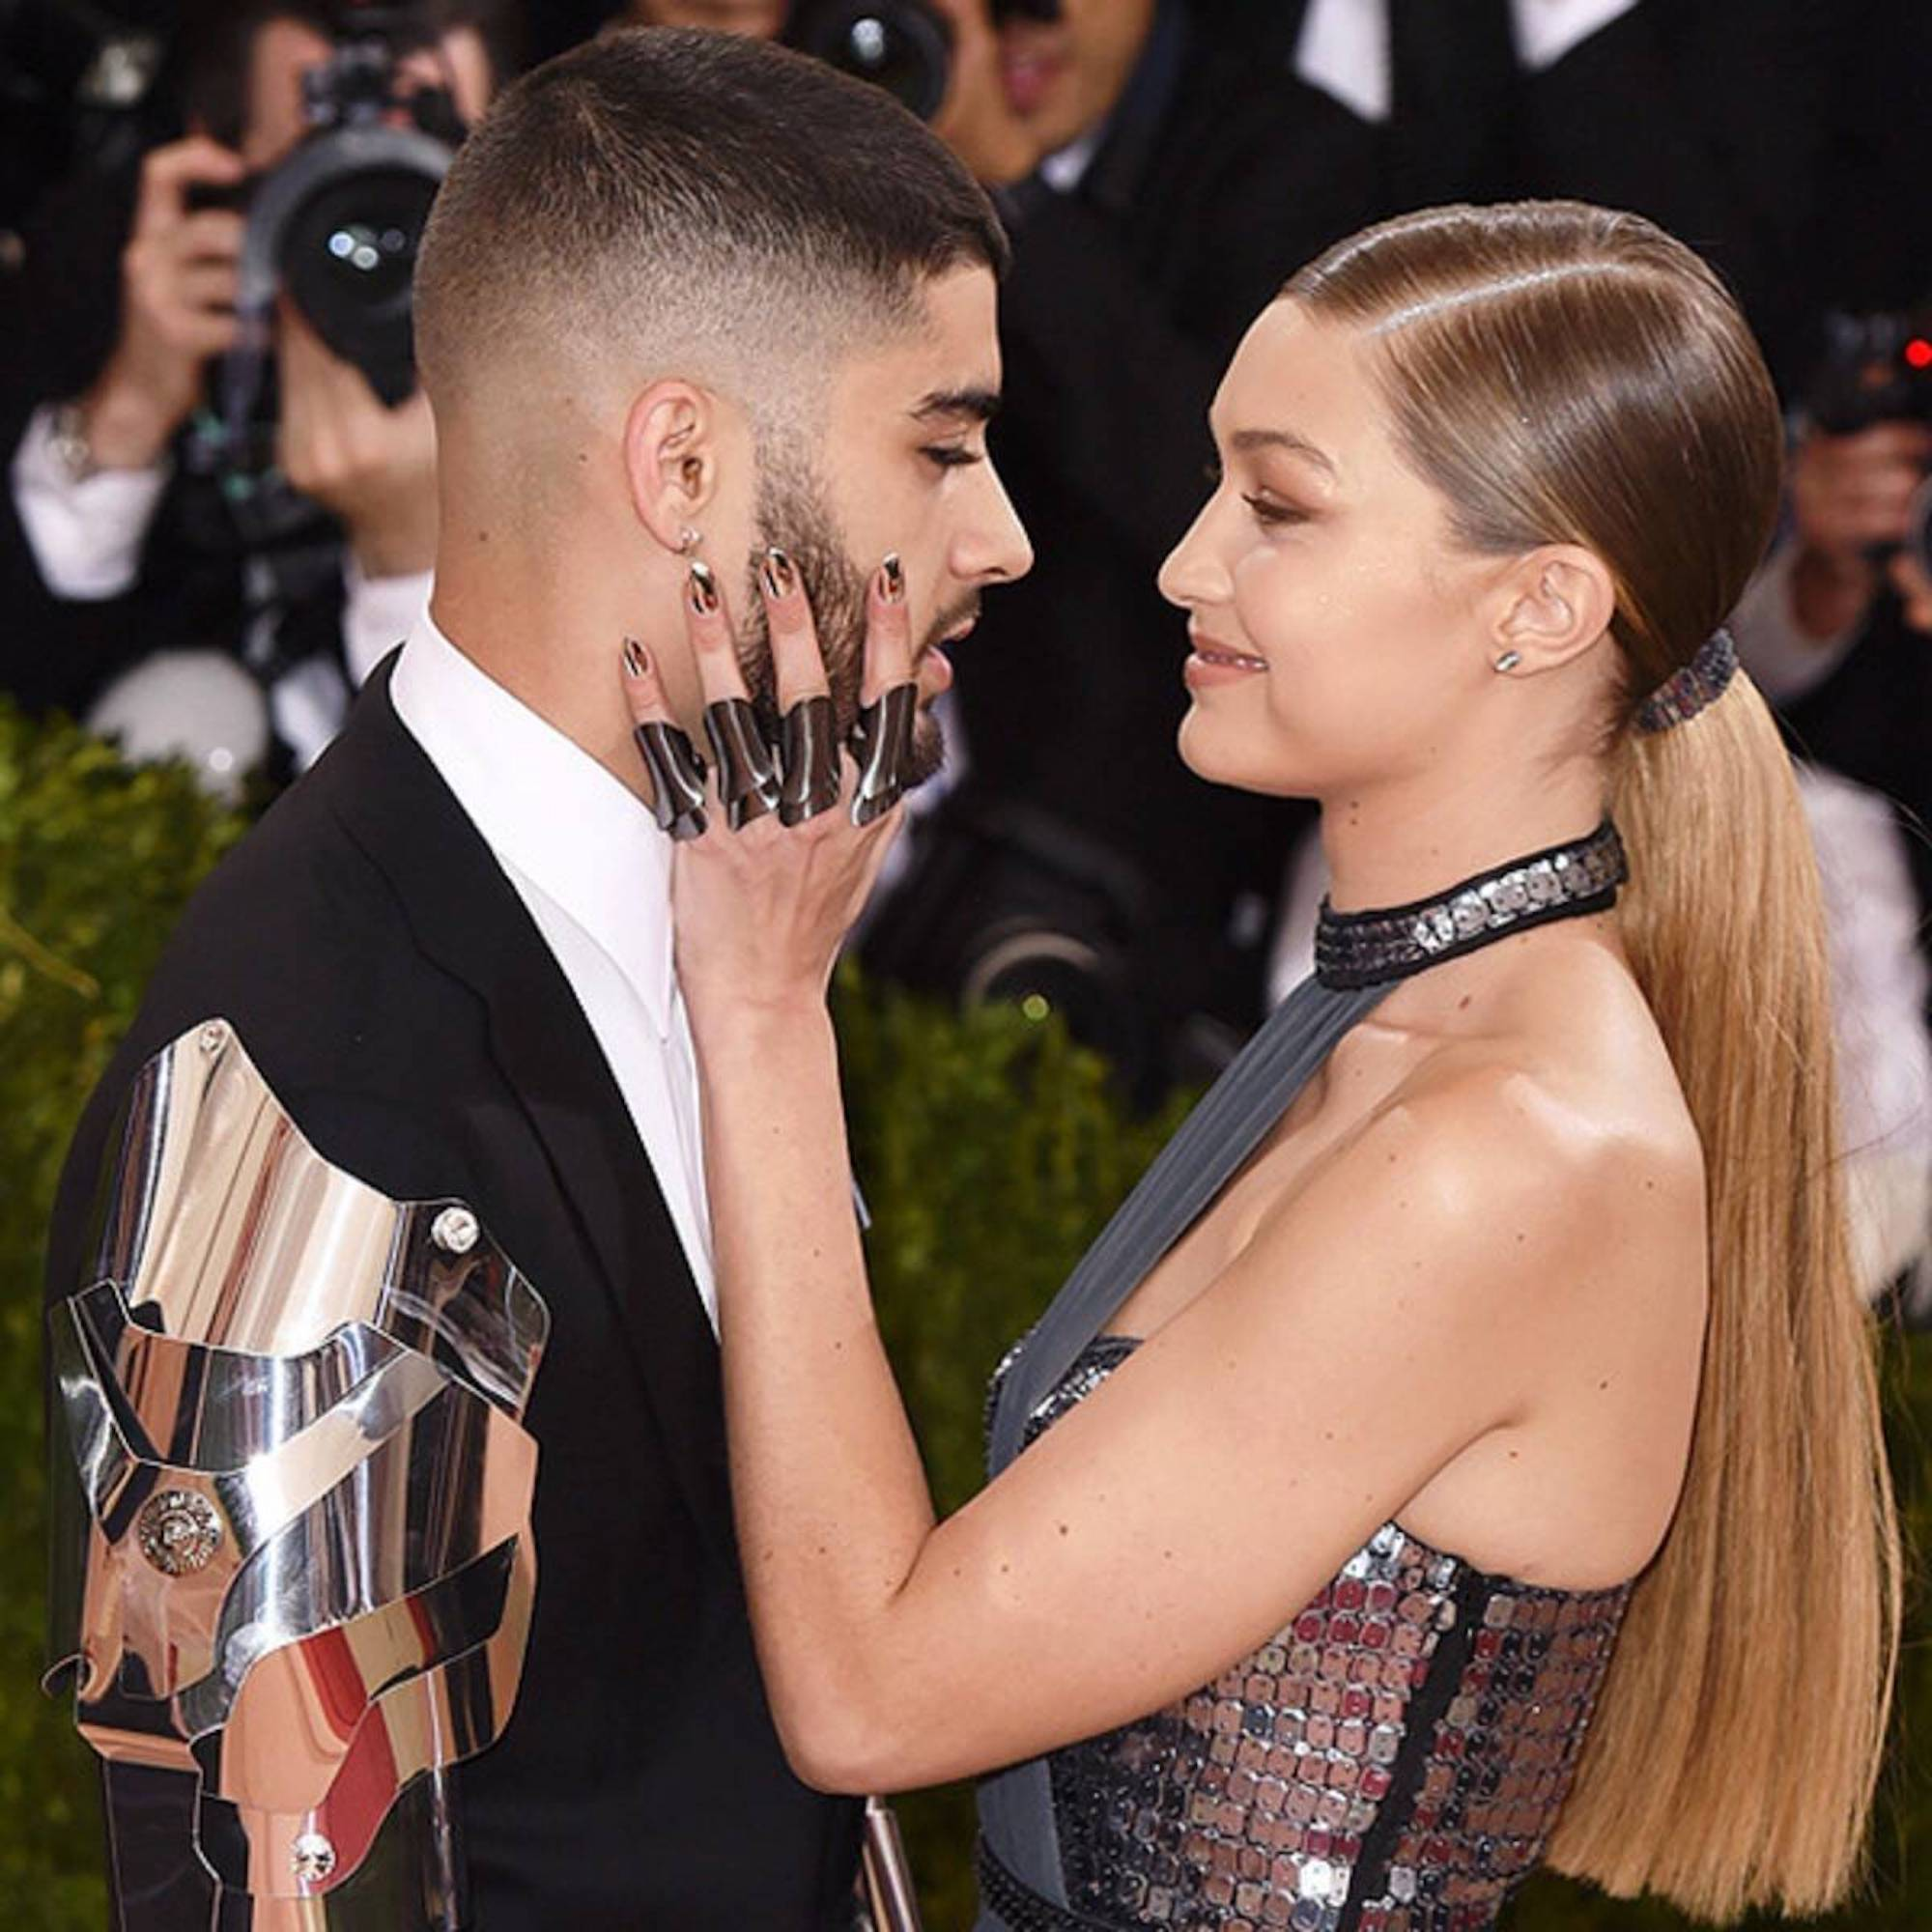 Zayn Malik and Gigi Hadid at the Met Gala